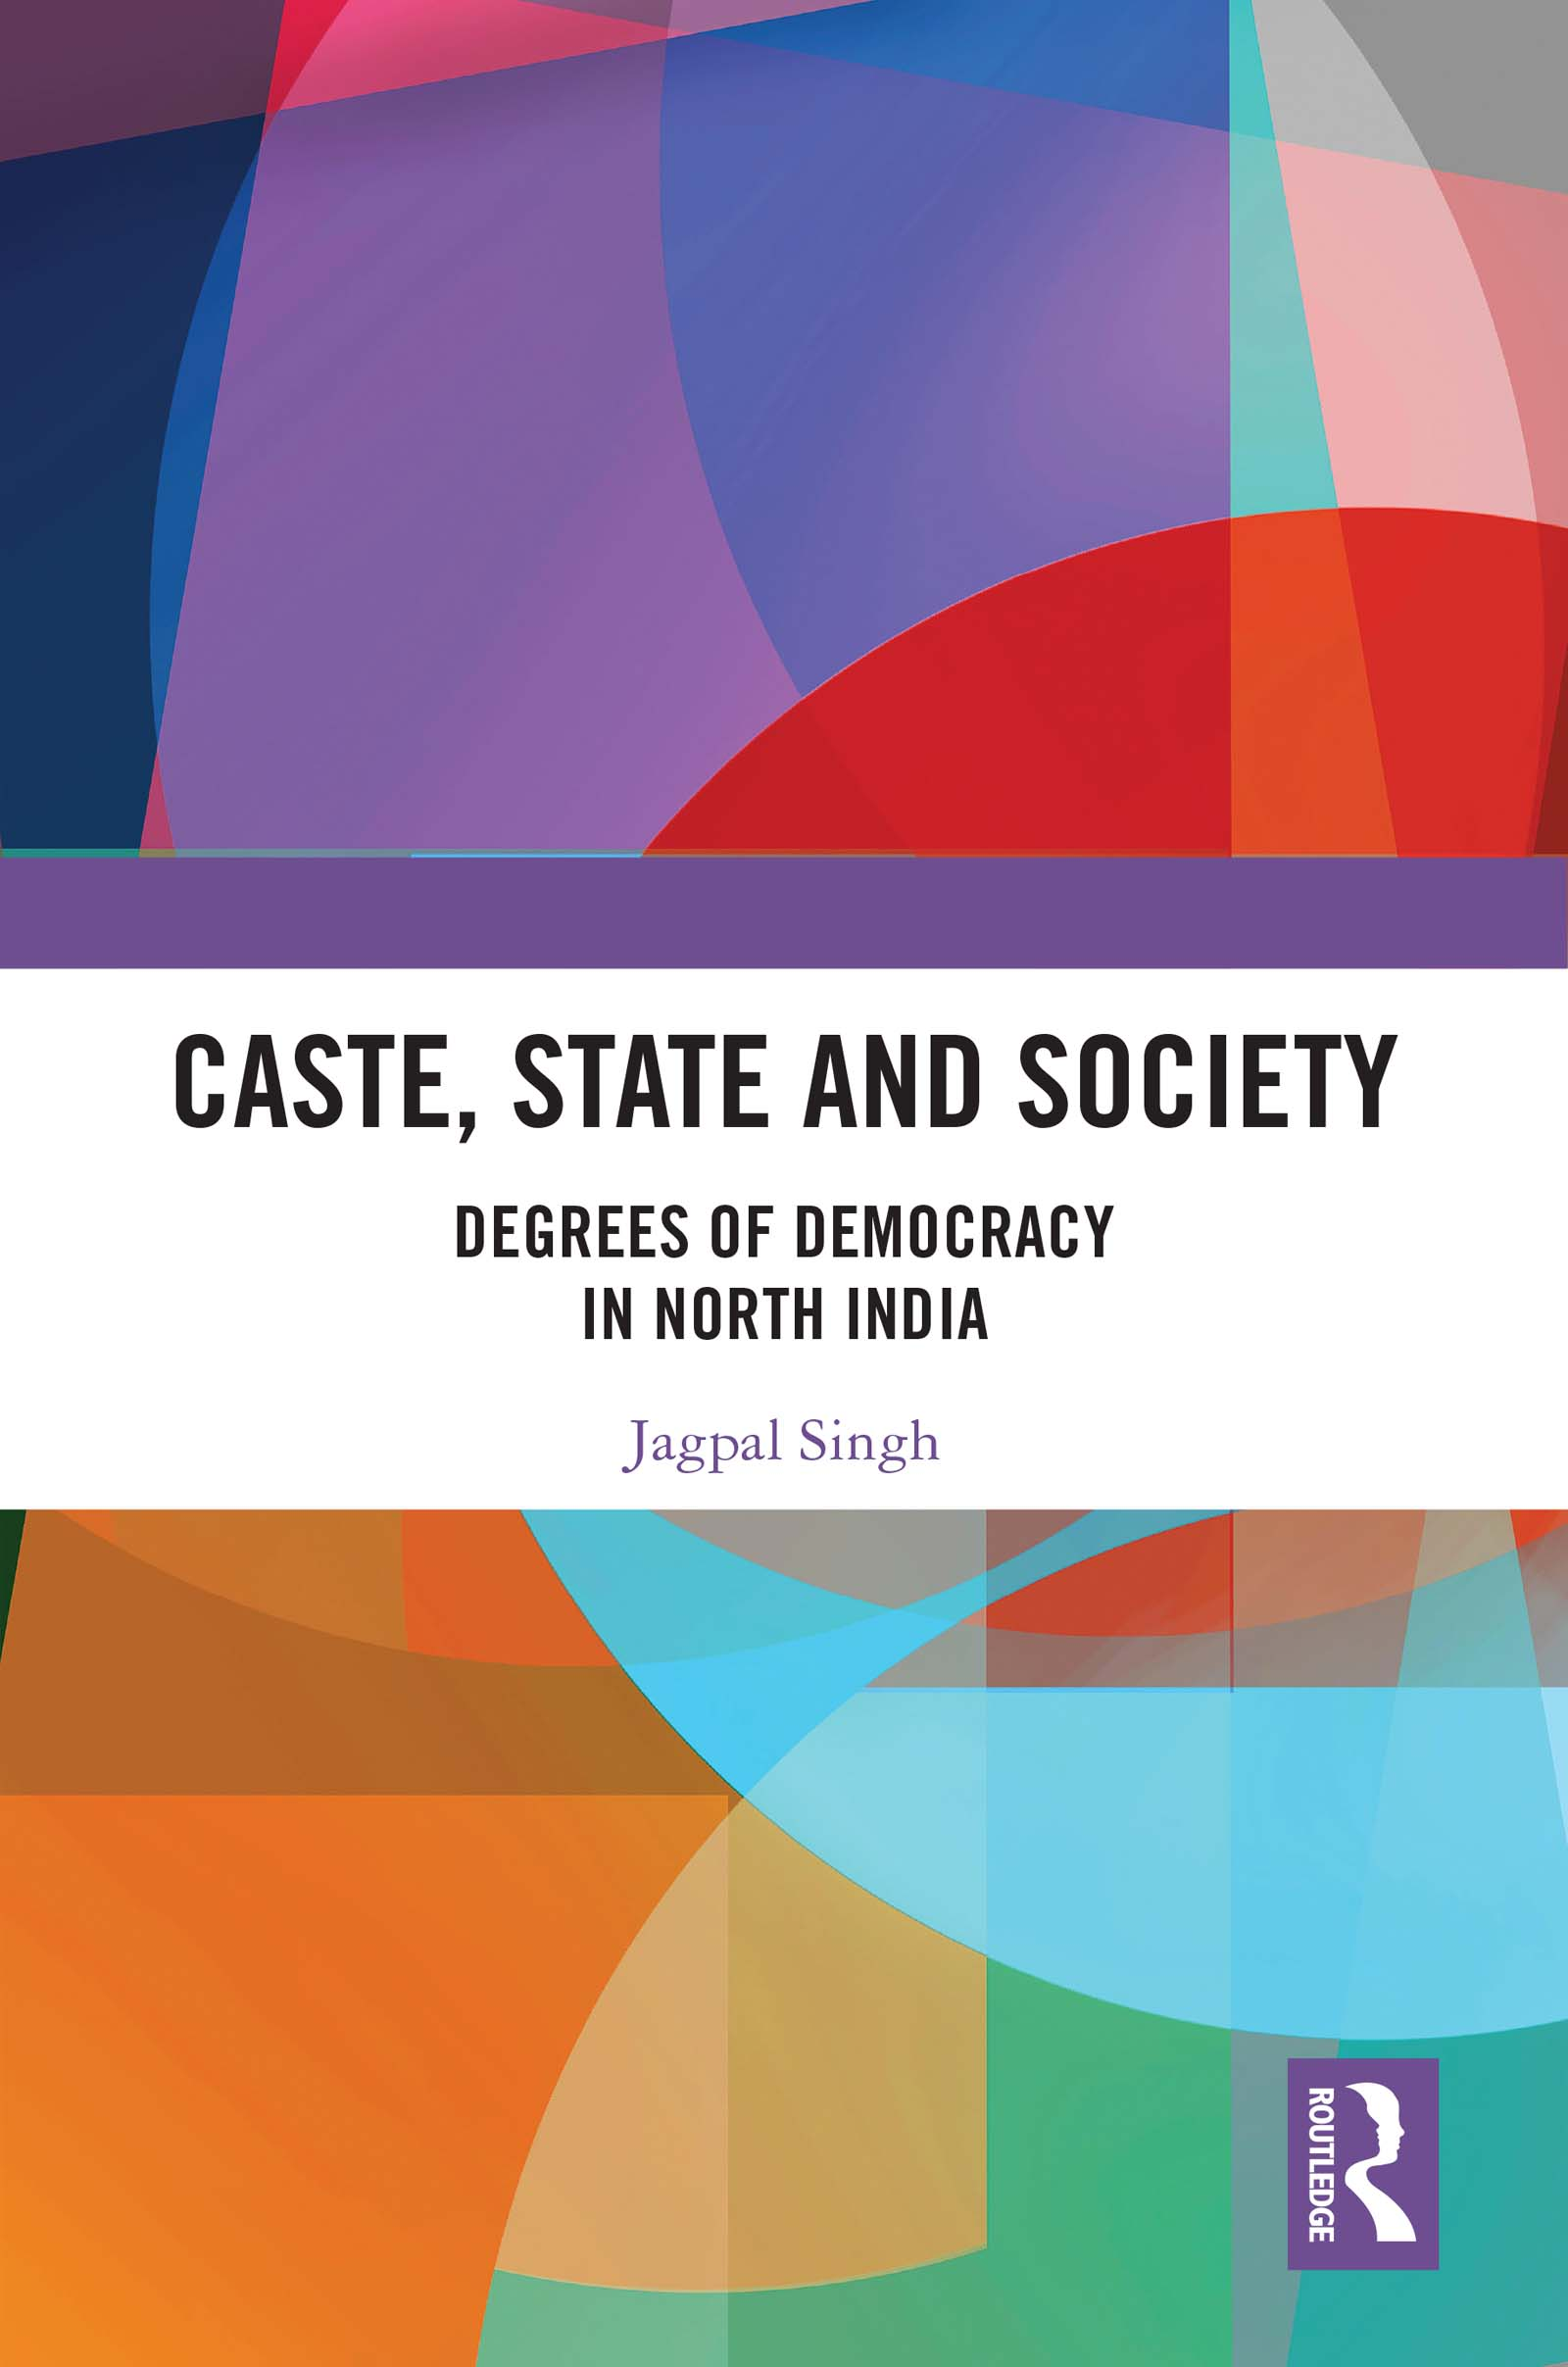 Caste, State and Society